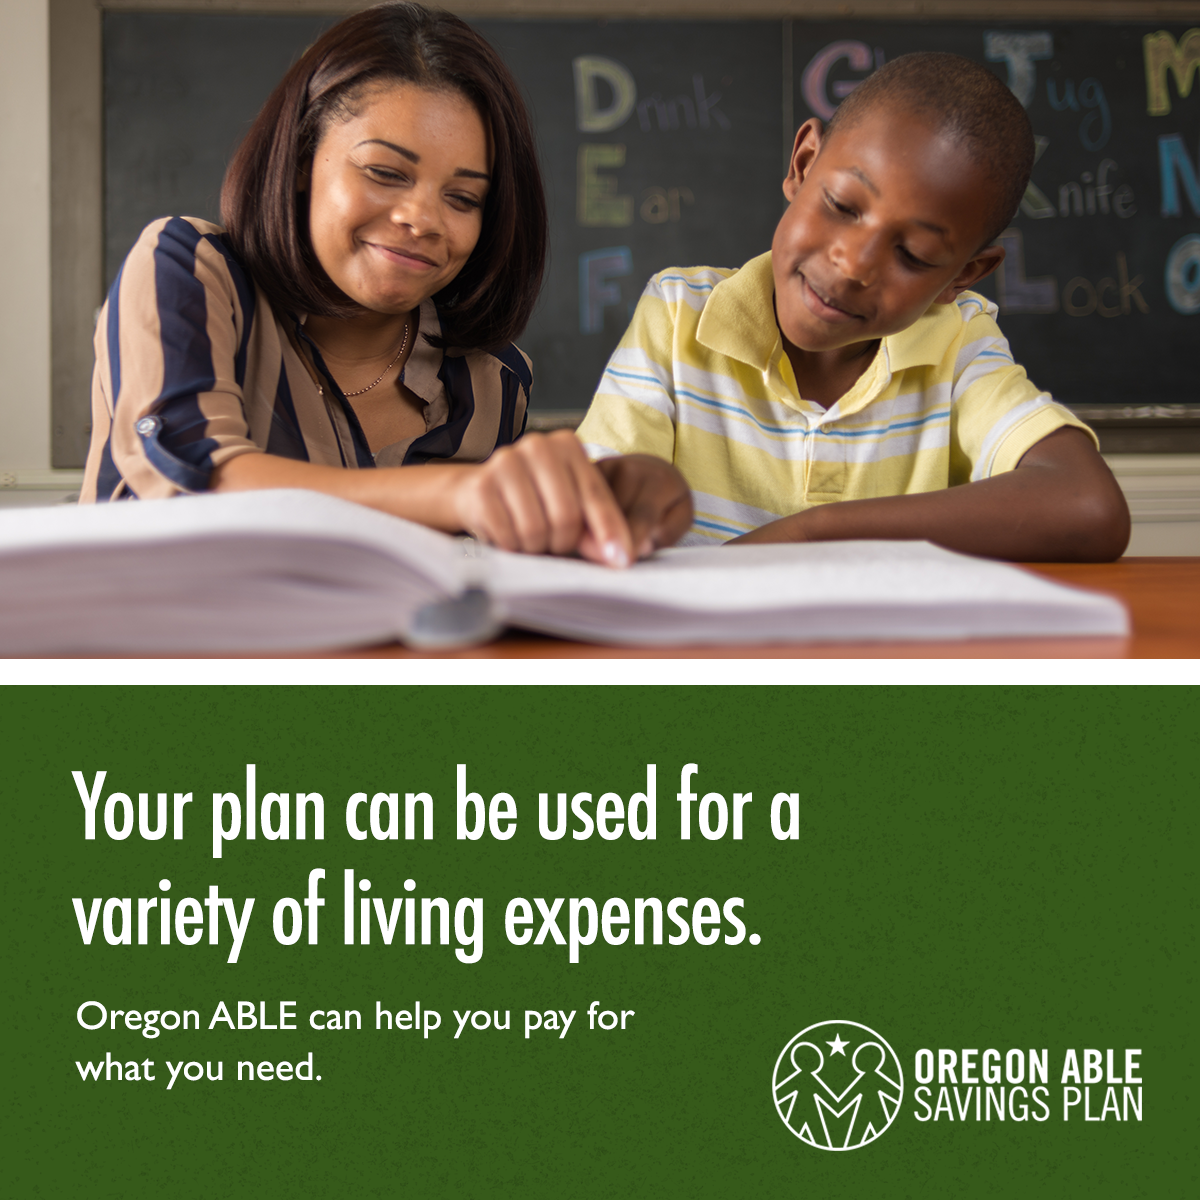 A teacher helps a boy read a Braille book with caption: Your plan can be used for a variety of living expenses. Oregon ABLE can help you pay for what you need.